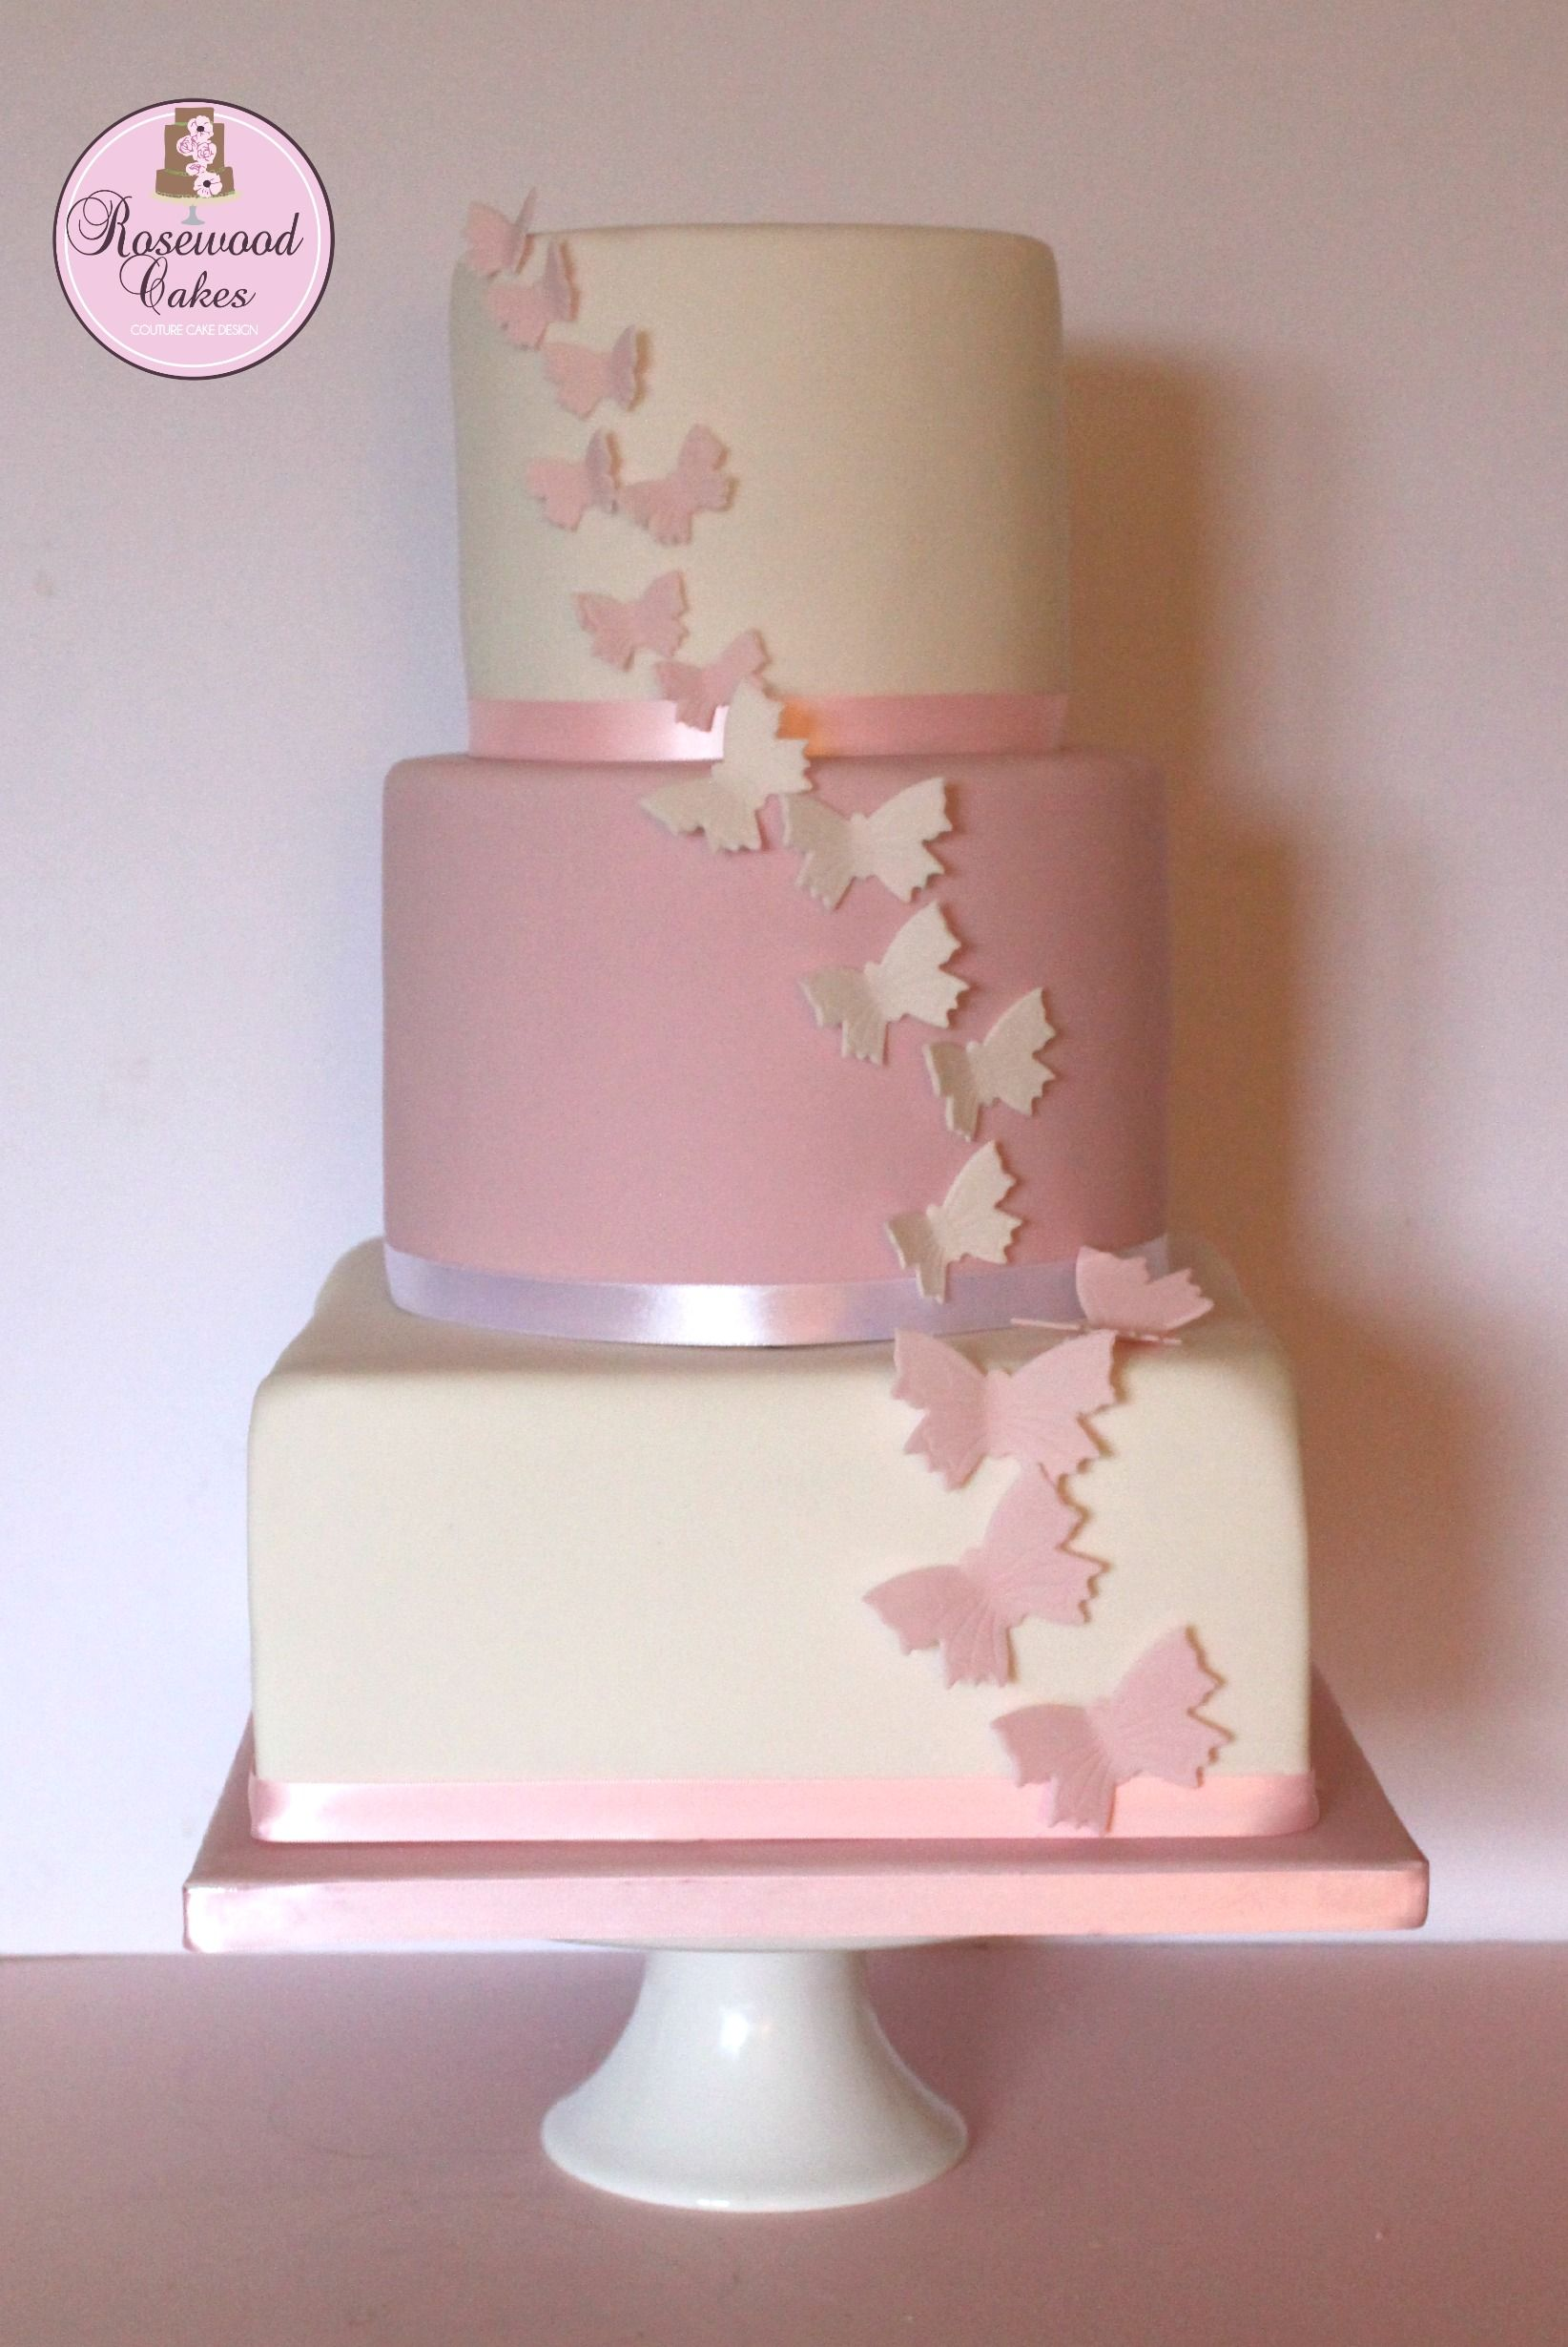 Pin by Rosewood Cakes on Rosewood Cakes - Artistic & Elegant Wedding ...